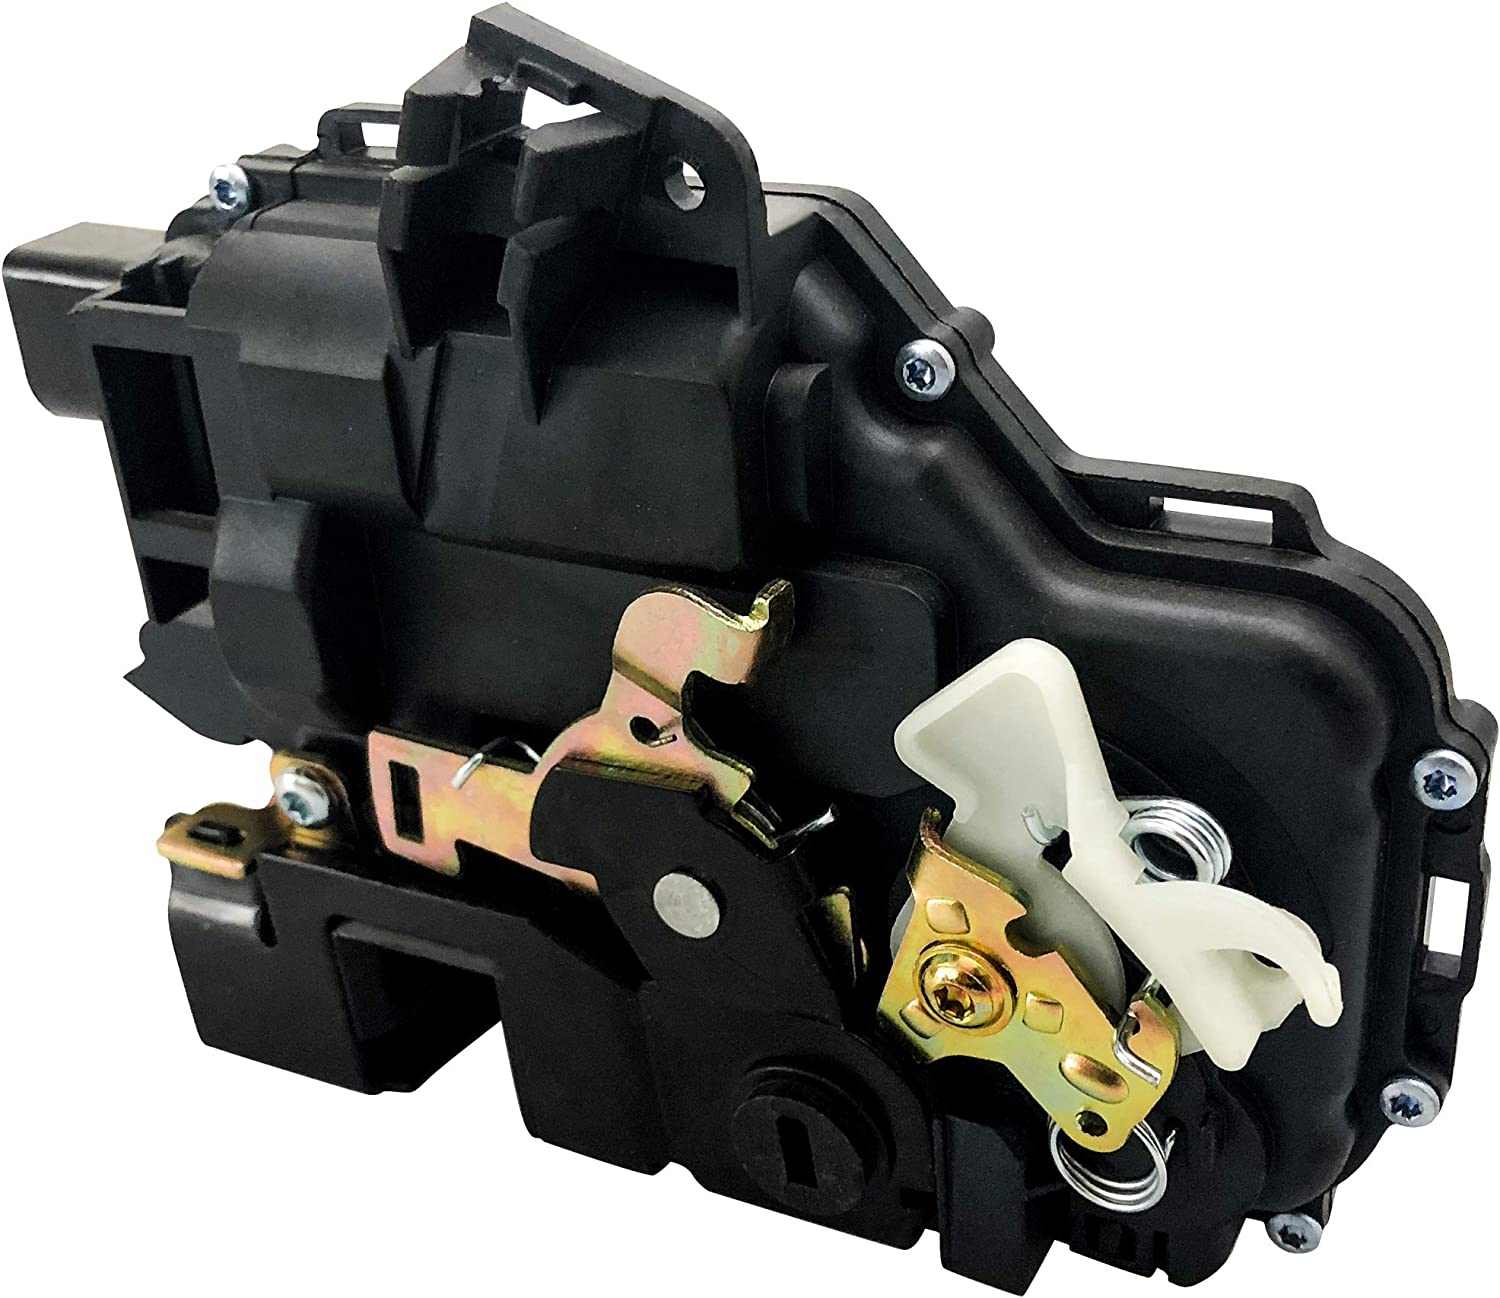 MYSMOT Door Latch /& Lock Actuator Assembly Compatible for Front Left VW 3B1837015AJ 931-500 MAP01700015-1